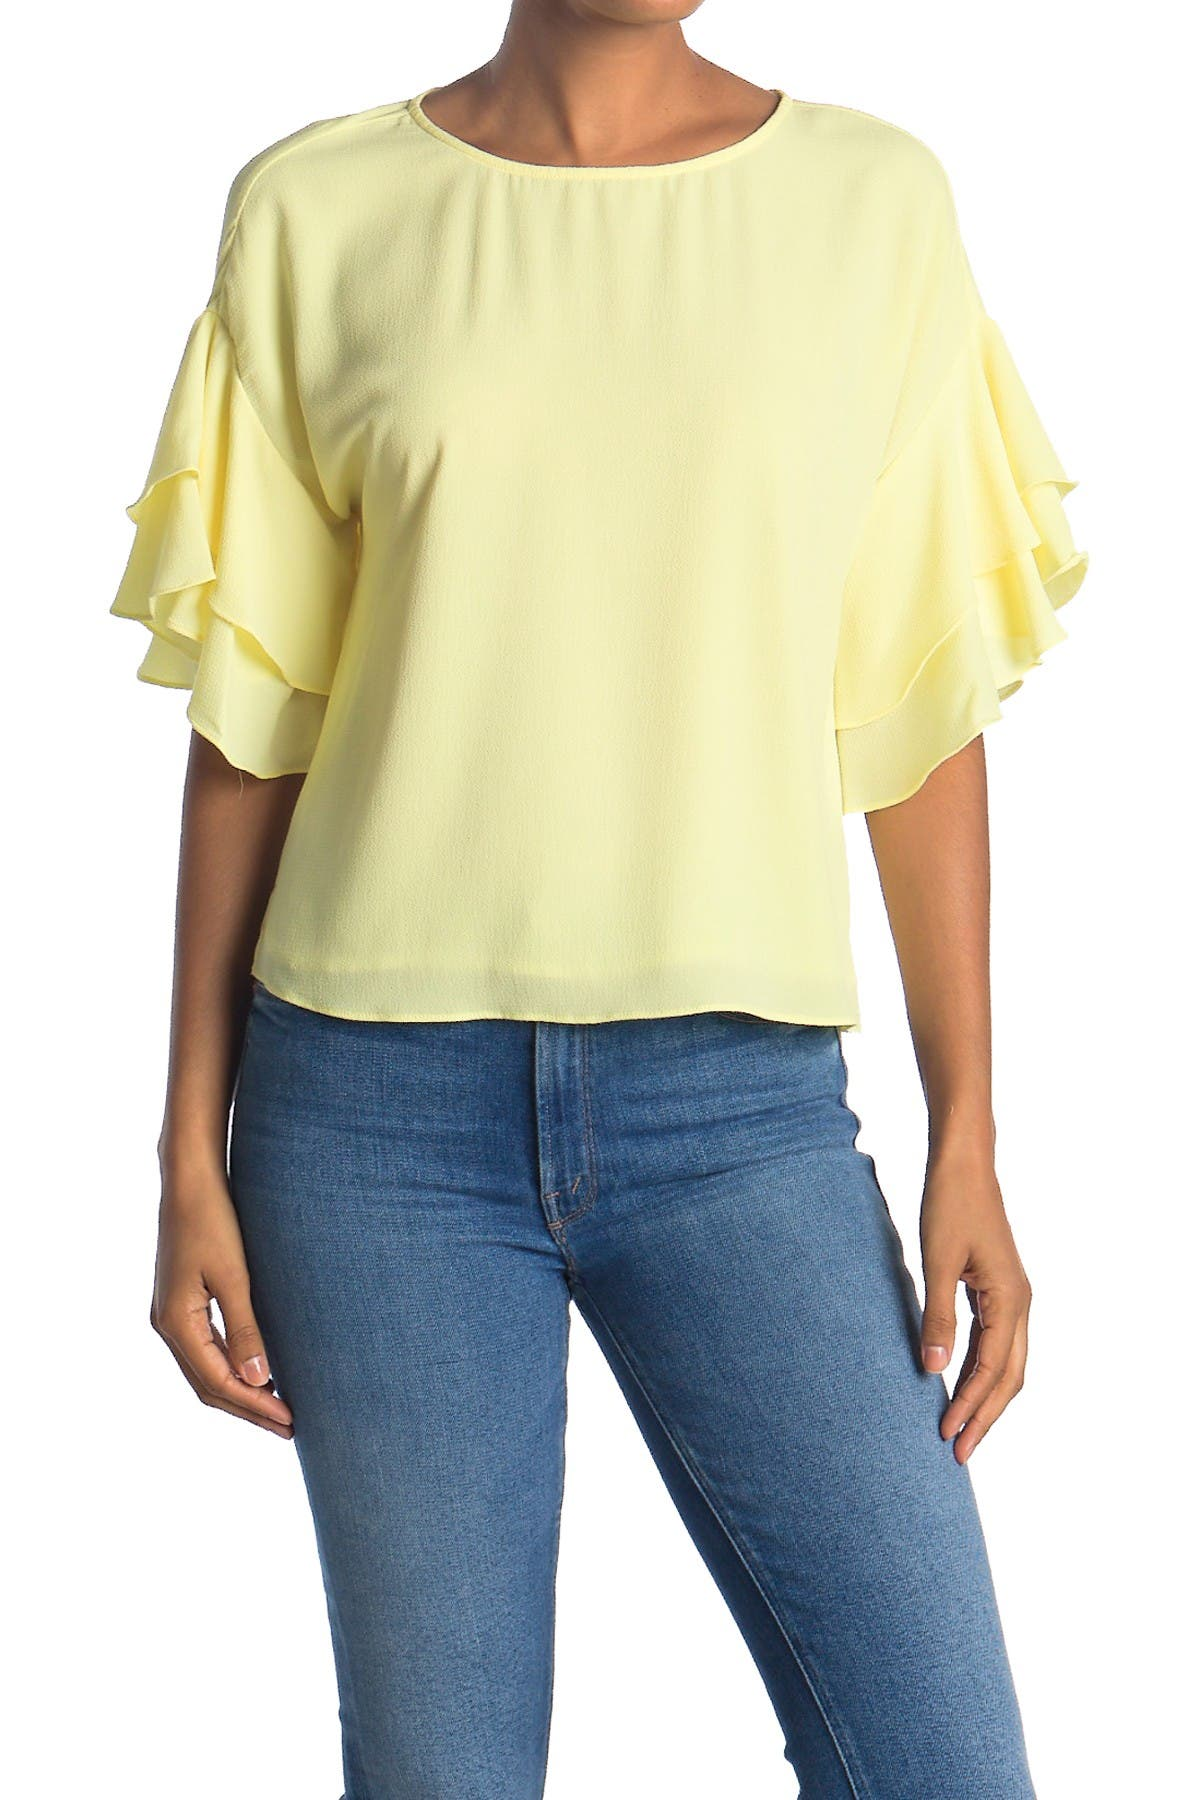 Image of Vince Camuto Tiered Ruffle Sleeve Blouse